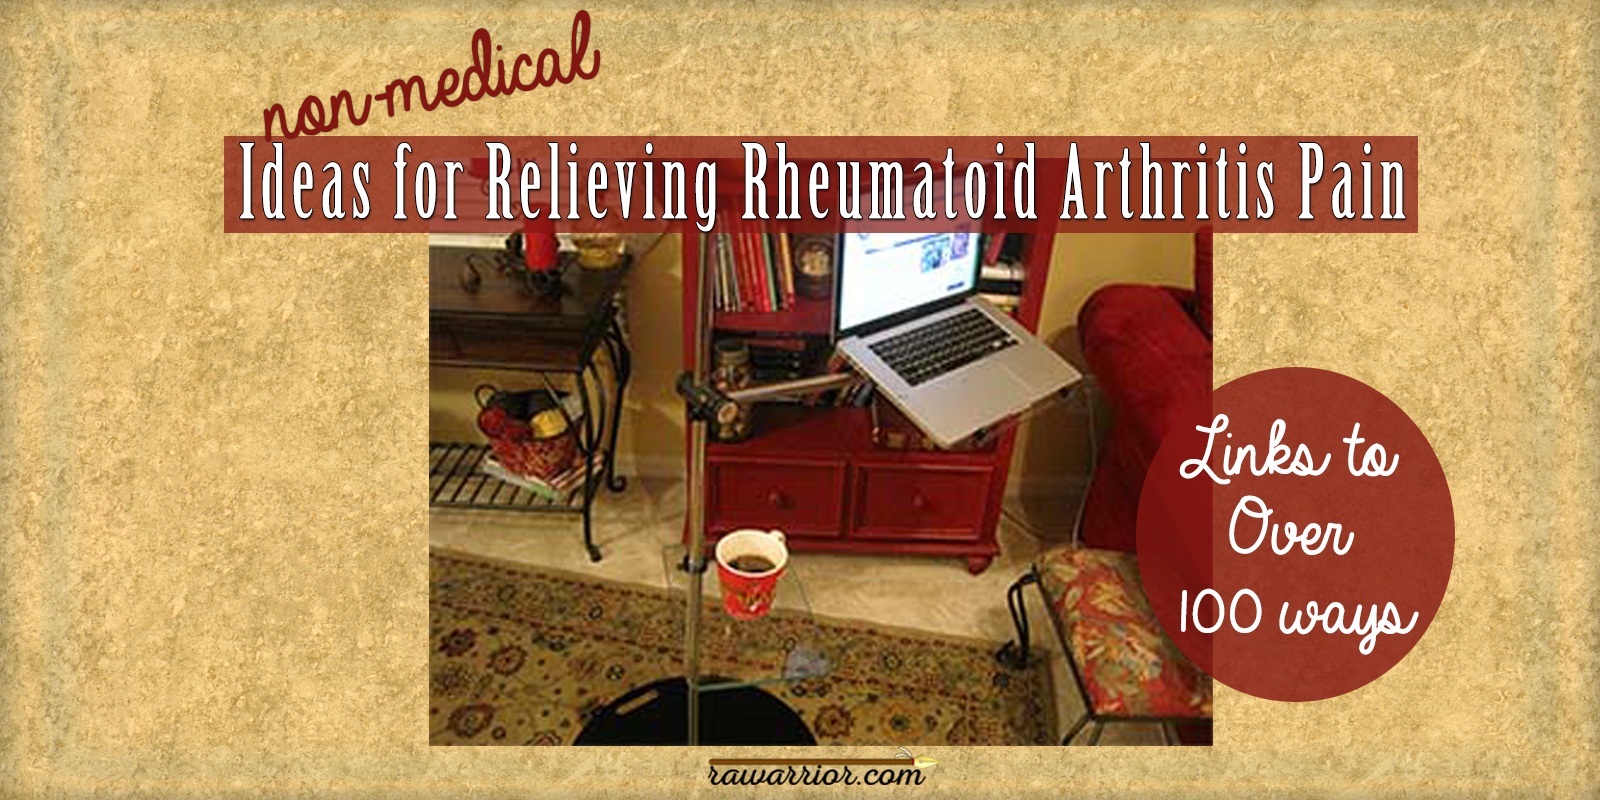 Relieving Rheumatoid Arthritis Pain